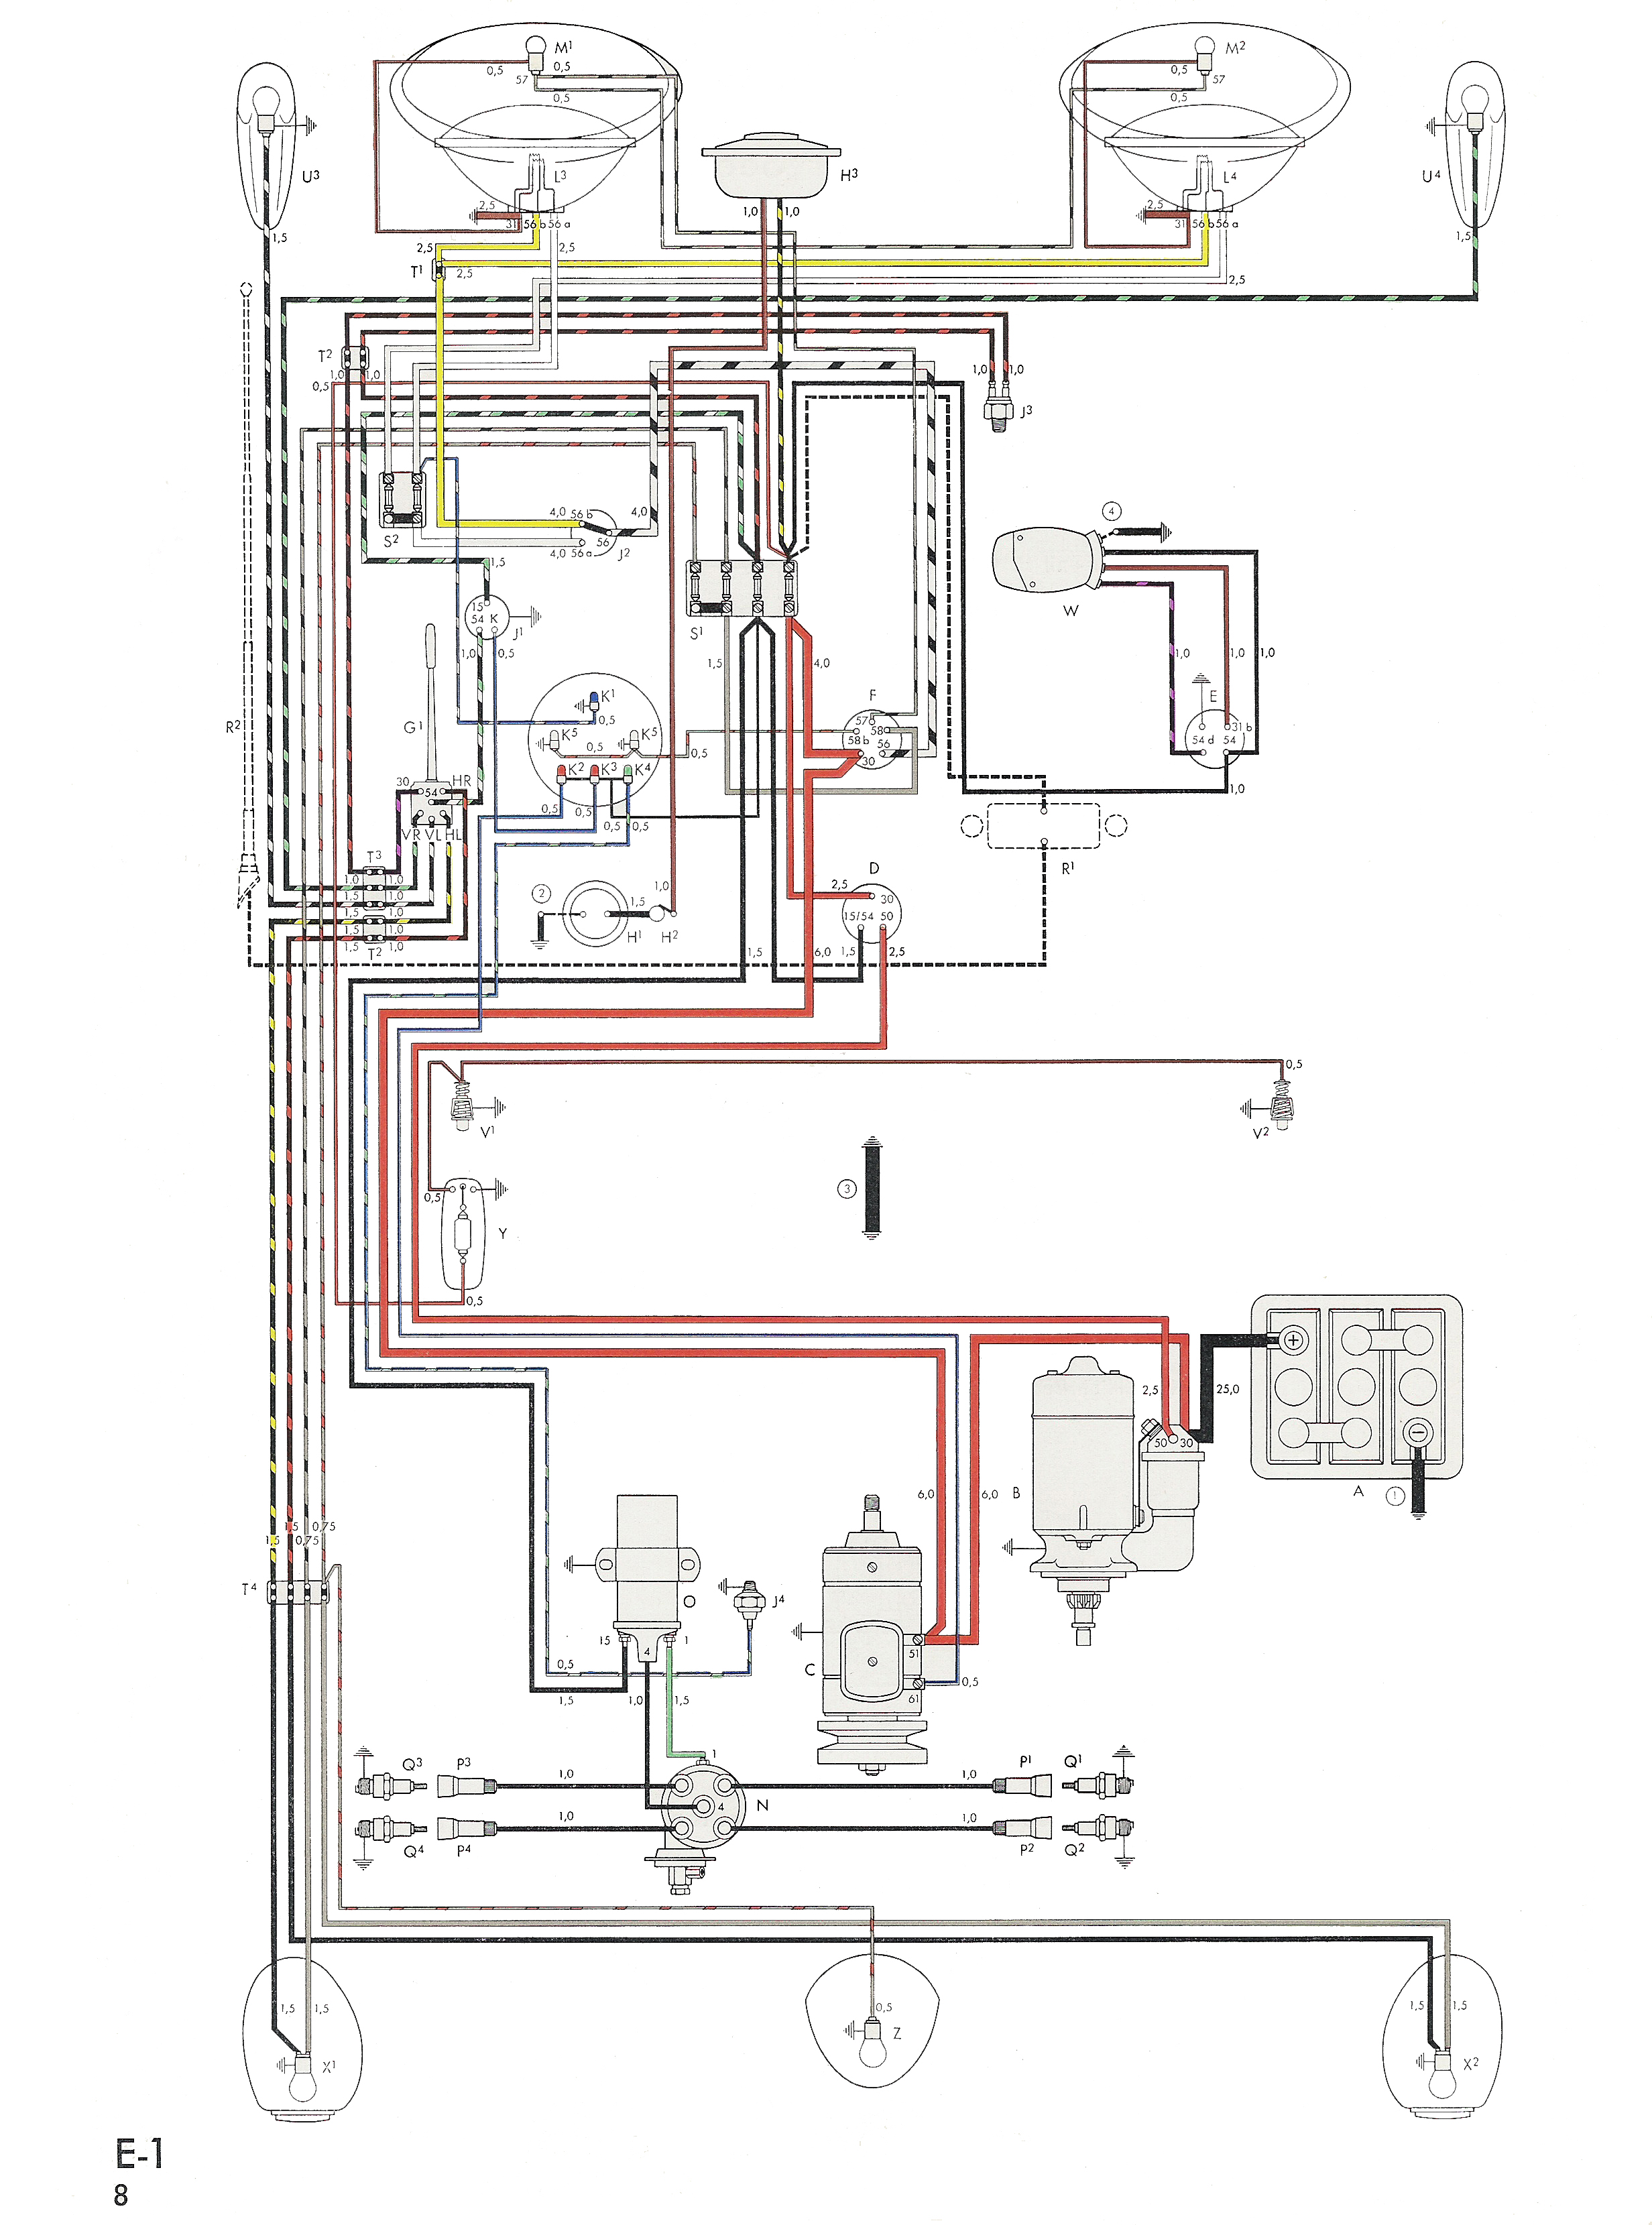 bug_58_USA_300dpi thesamba com type 1 wiring diagrams find wiring diagram for 87 ford f 150 at bayanpartner.co